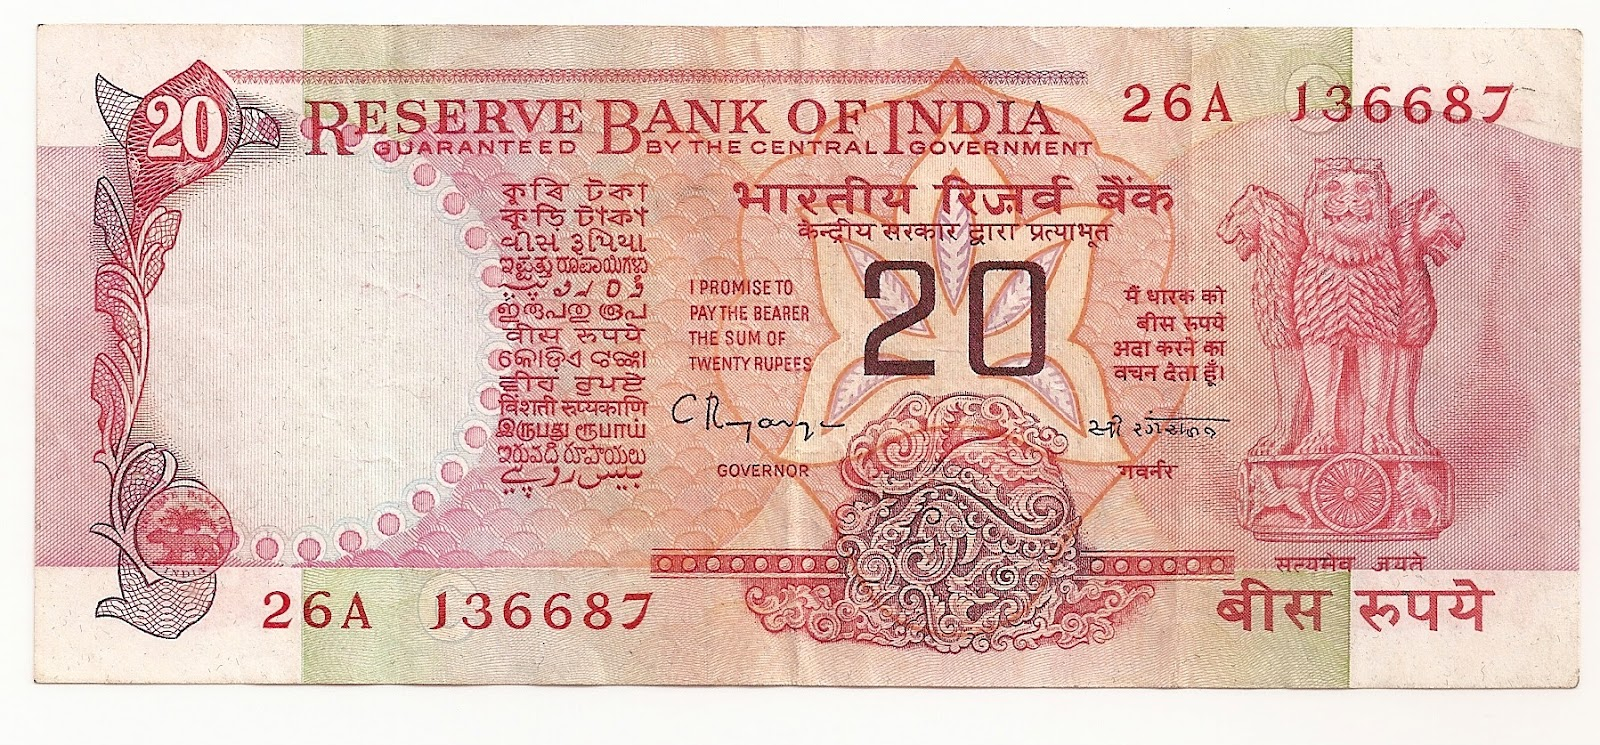 Rupee Note Change of a 20 Rupee Note Issued